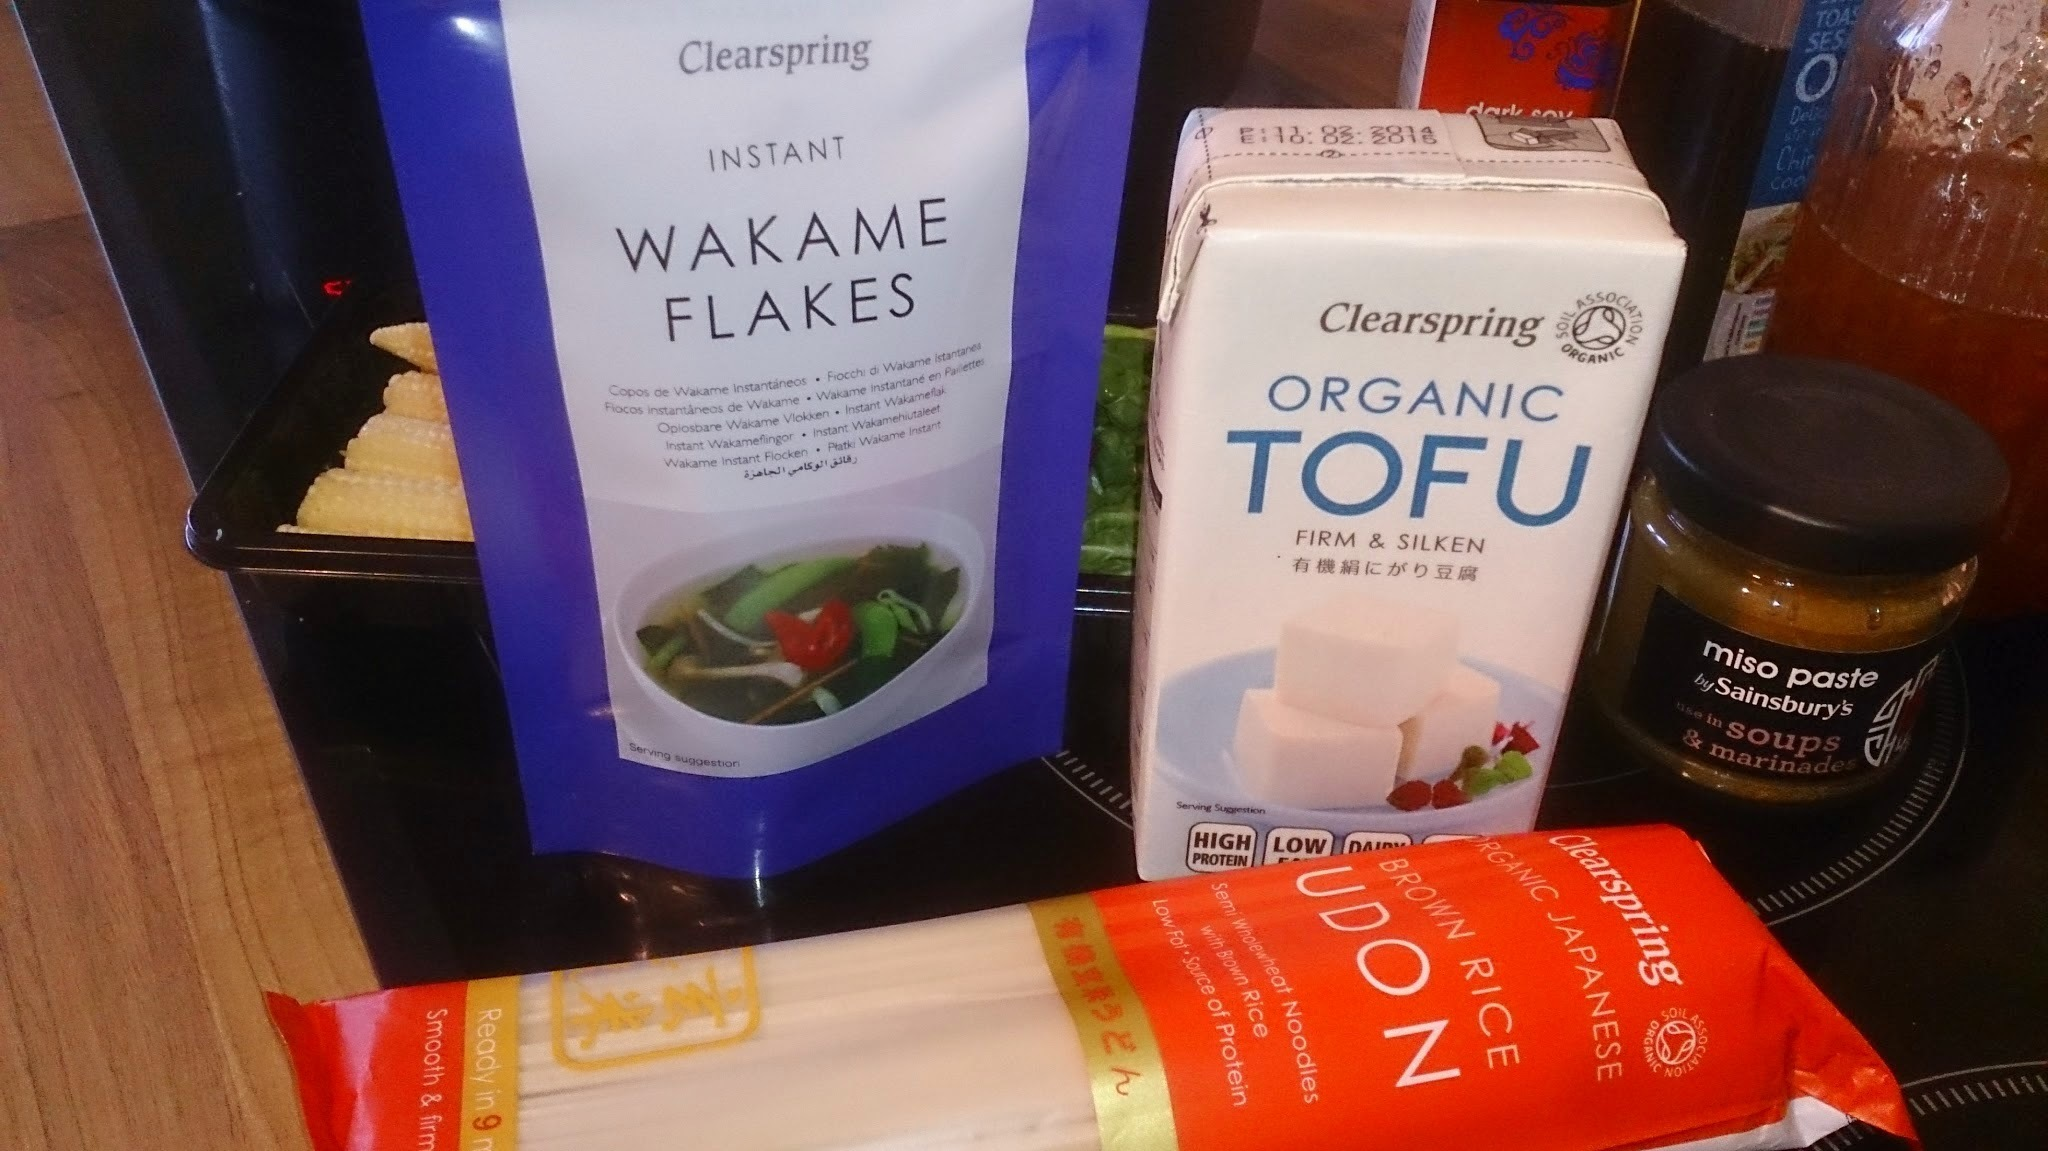 Recipe for Wakame and Miso Udon Noodle Soup with Clearspring Organic